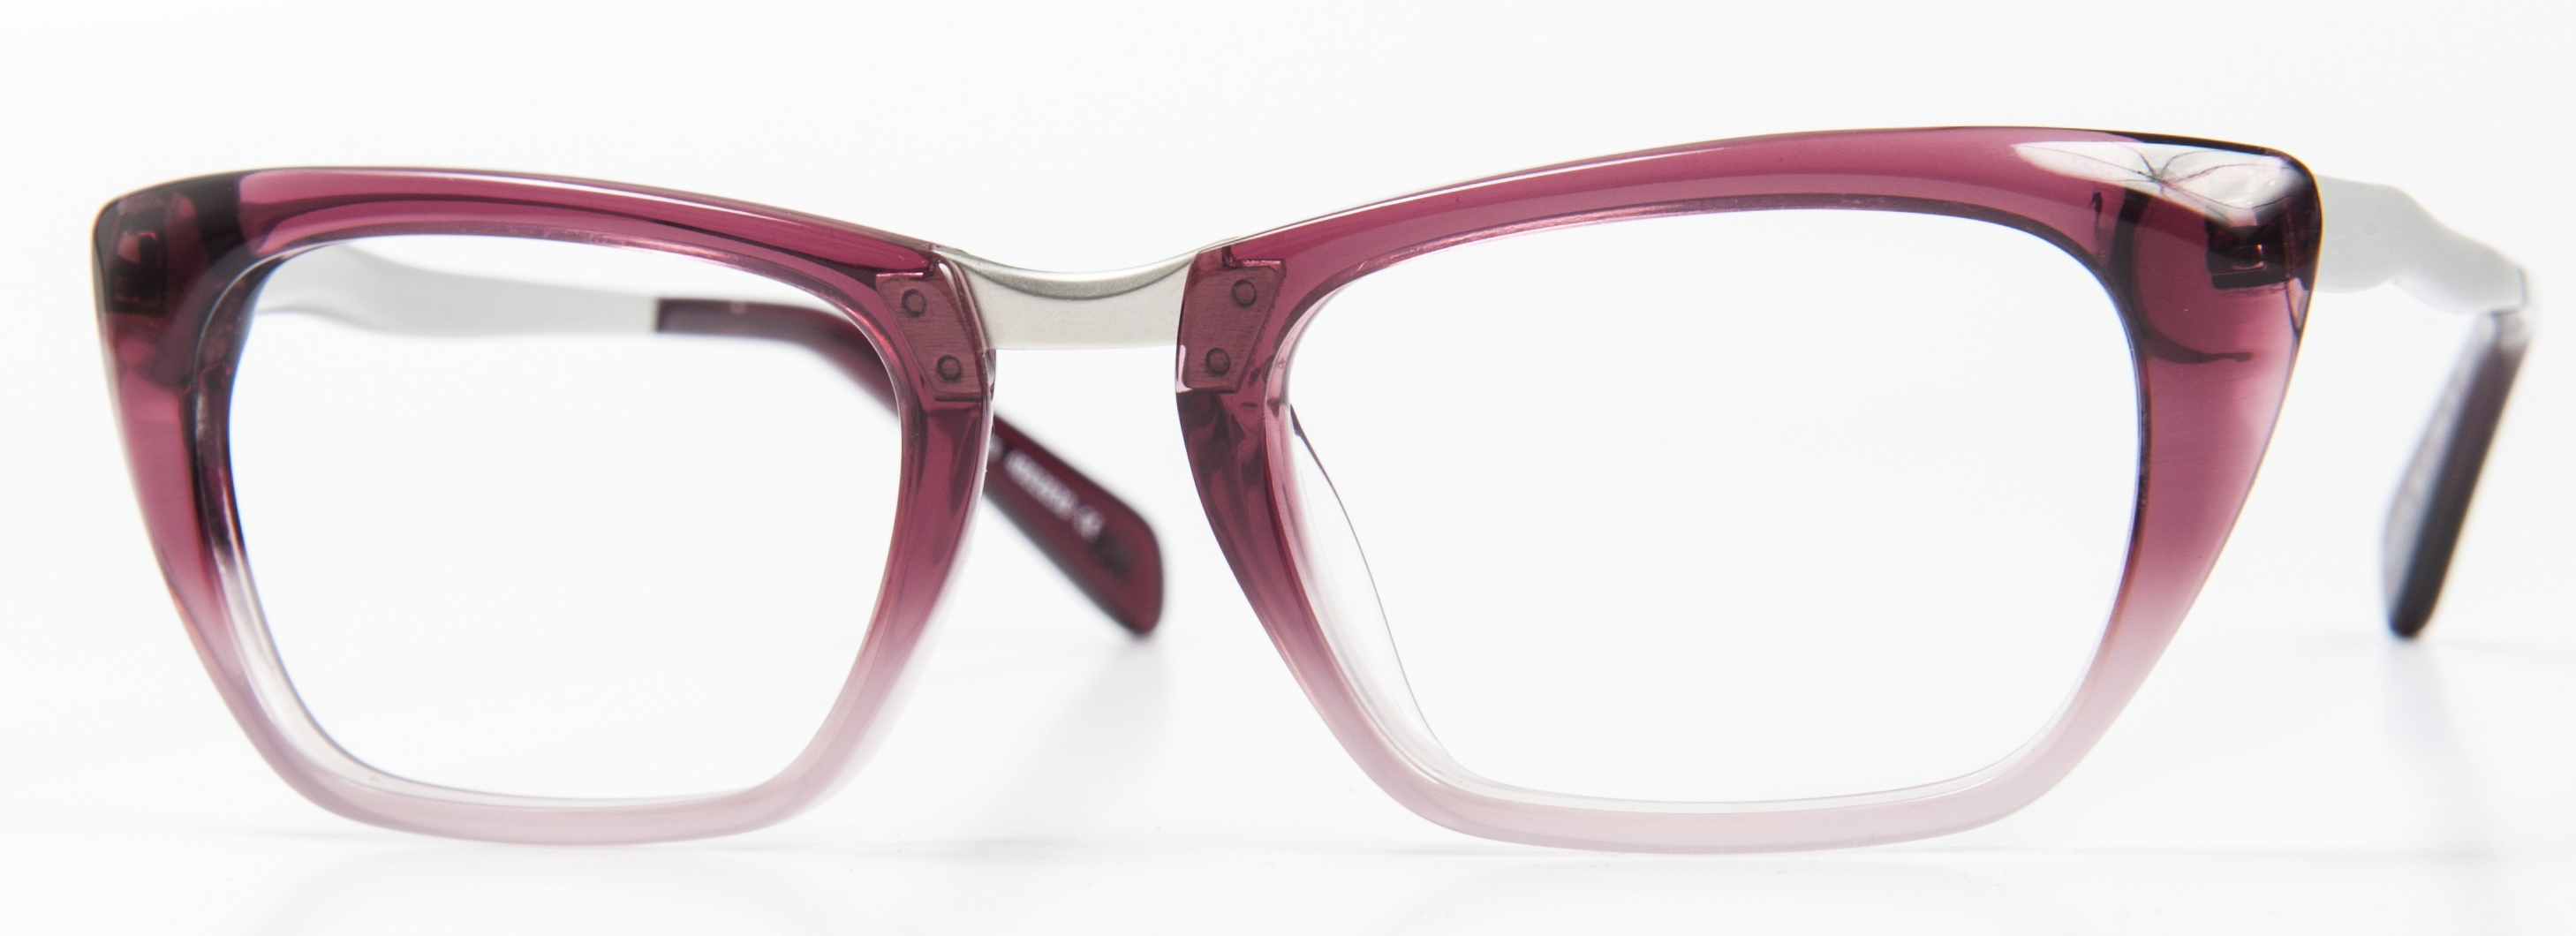 Specsavers Glasses Frames : New glasses? Specsavers SS14 fashion frames launches So ...